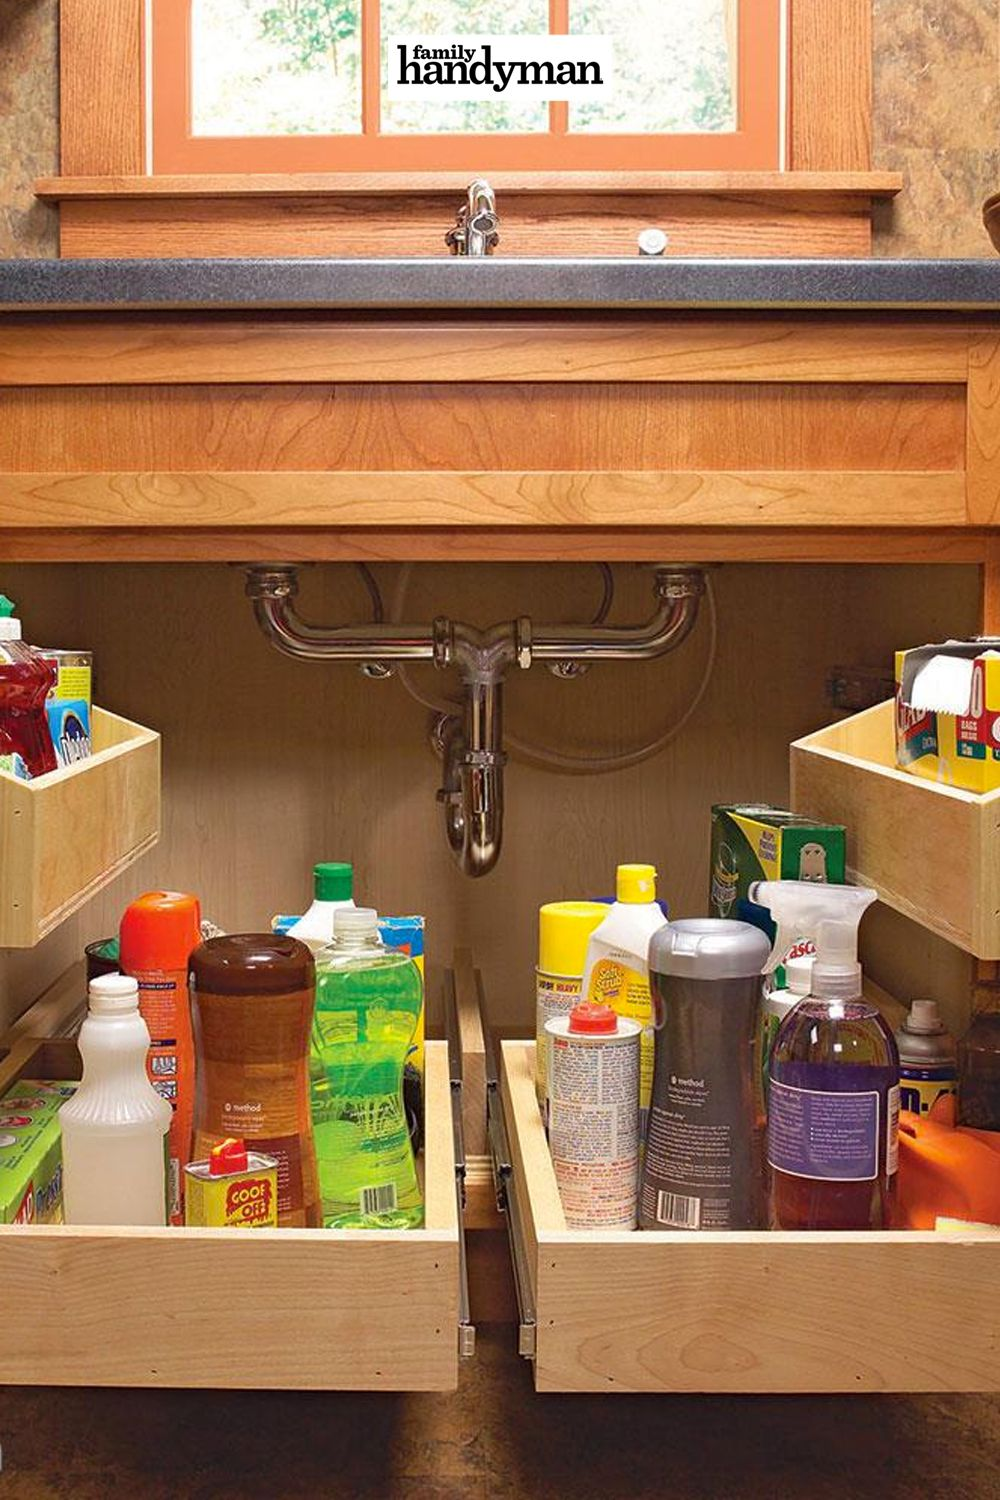 30 cheap kitchen cabinet add ons you can diy in 2020 cheap kitchen cabinets diy kitchen on kitchen organization diy id=57529